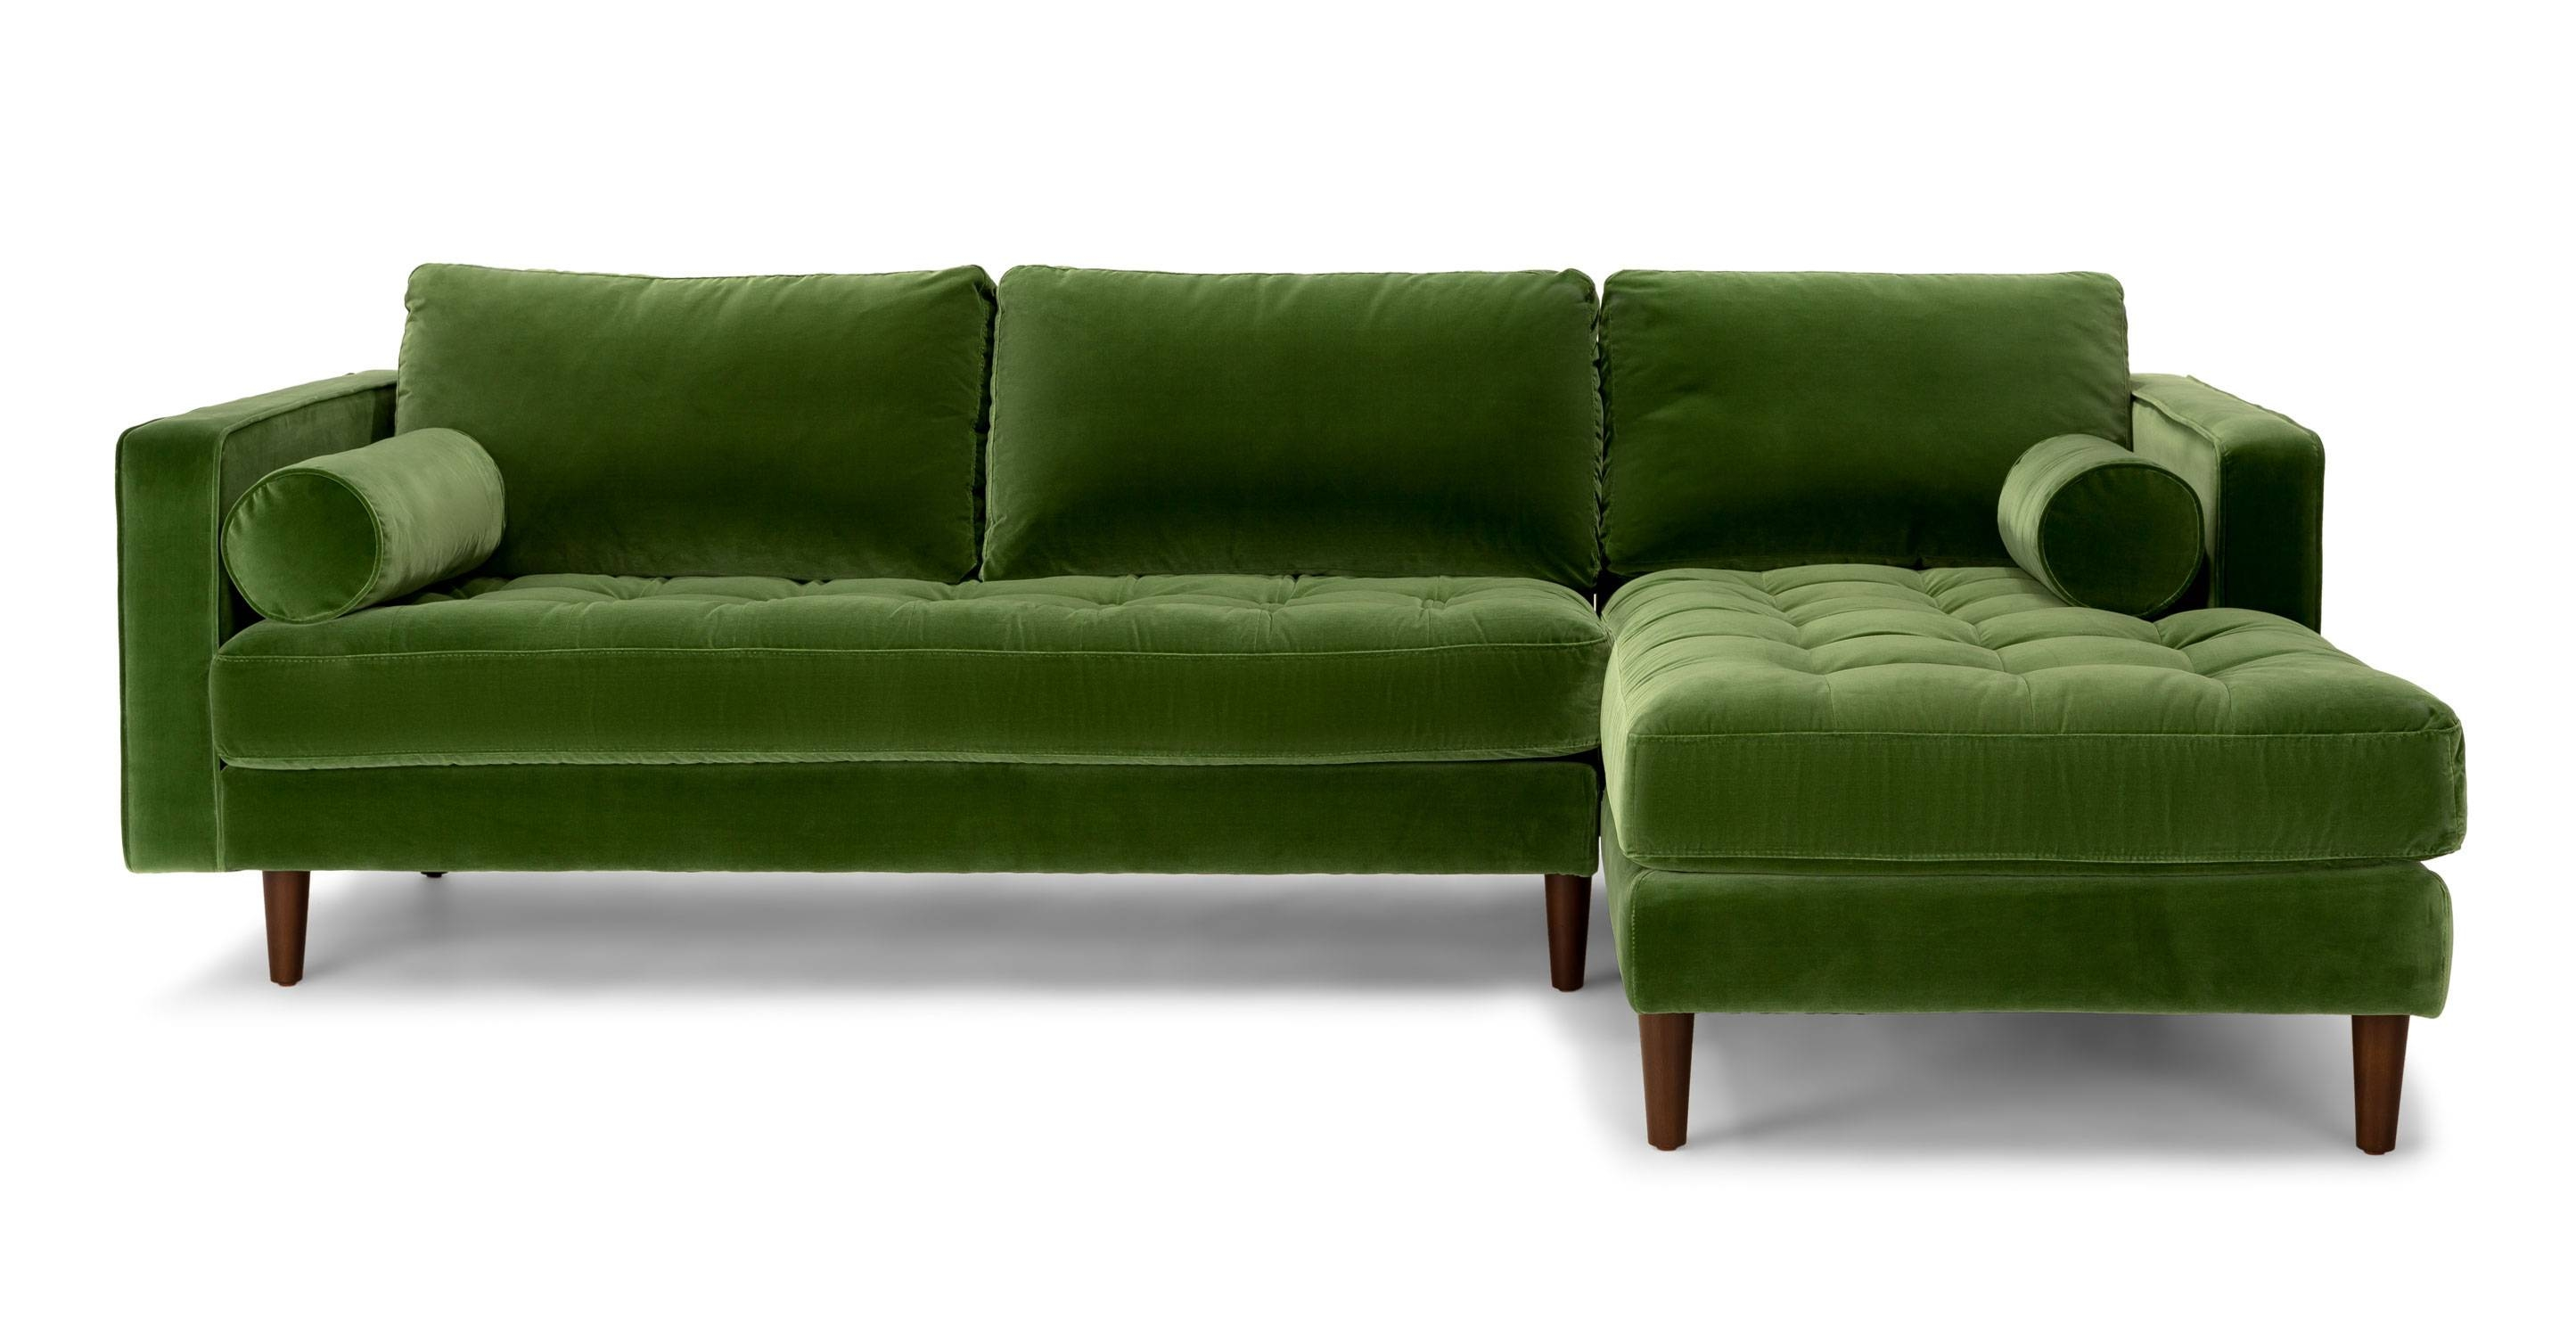 leather vs fabric sofa india taupe velvet uk inspirational waverunner modular green sectional sofas